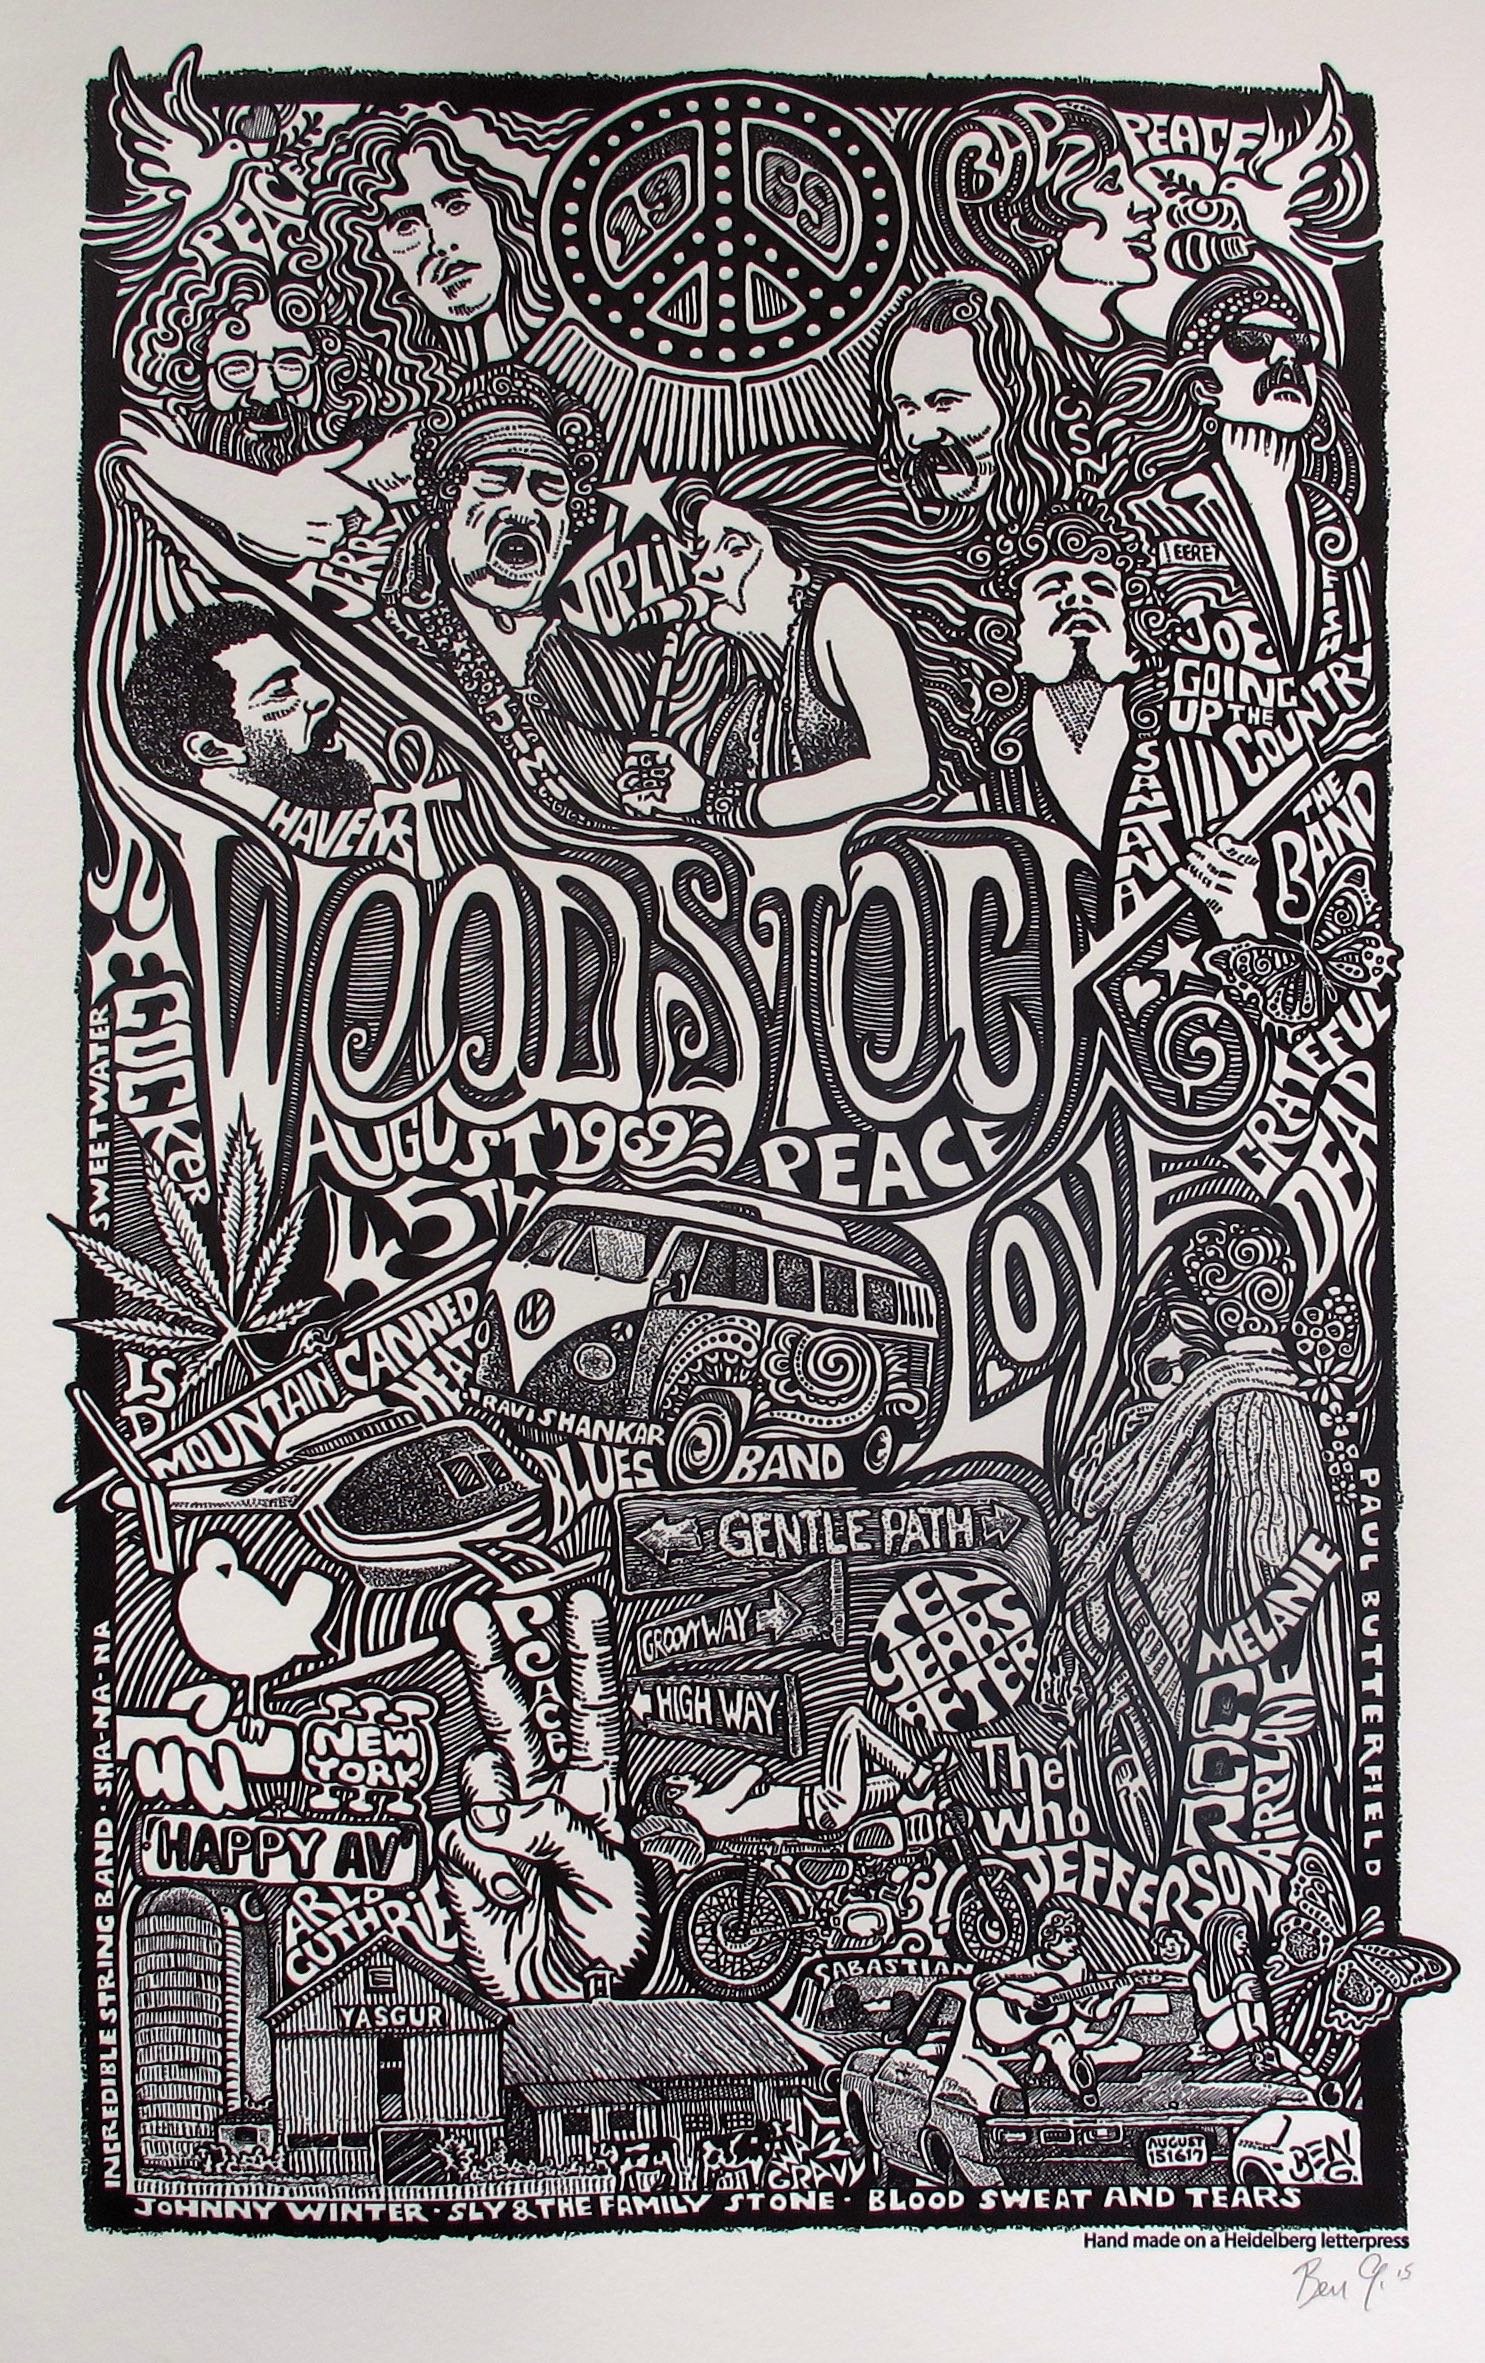 WOODSTOCK 1969 Psychedelic Hand Signed Posterography Letterpress ART